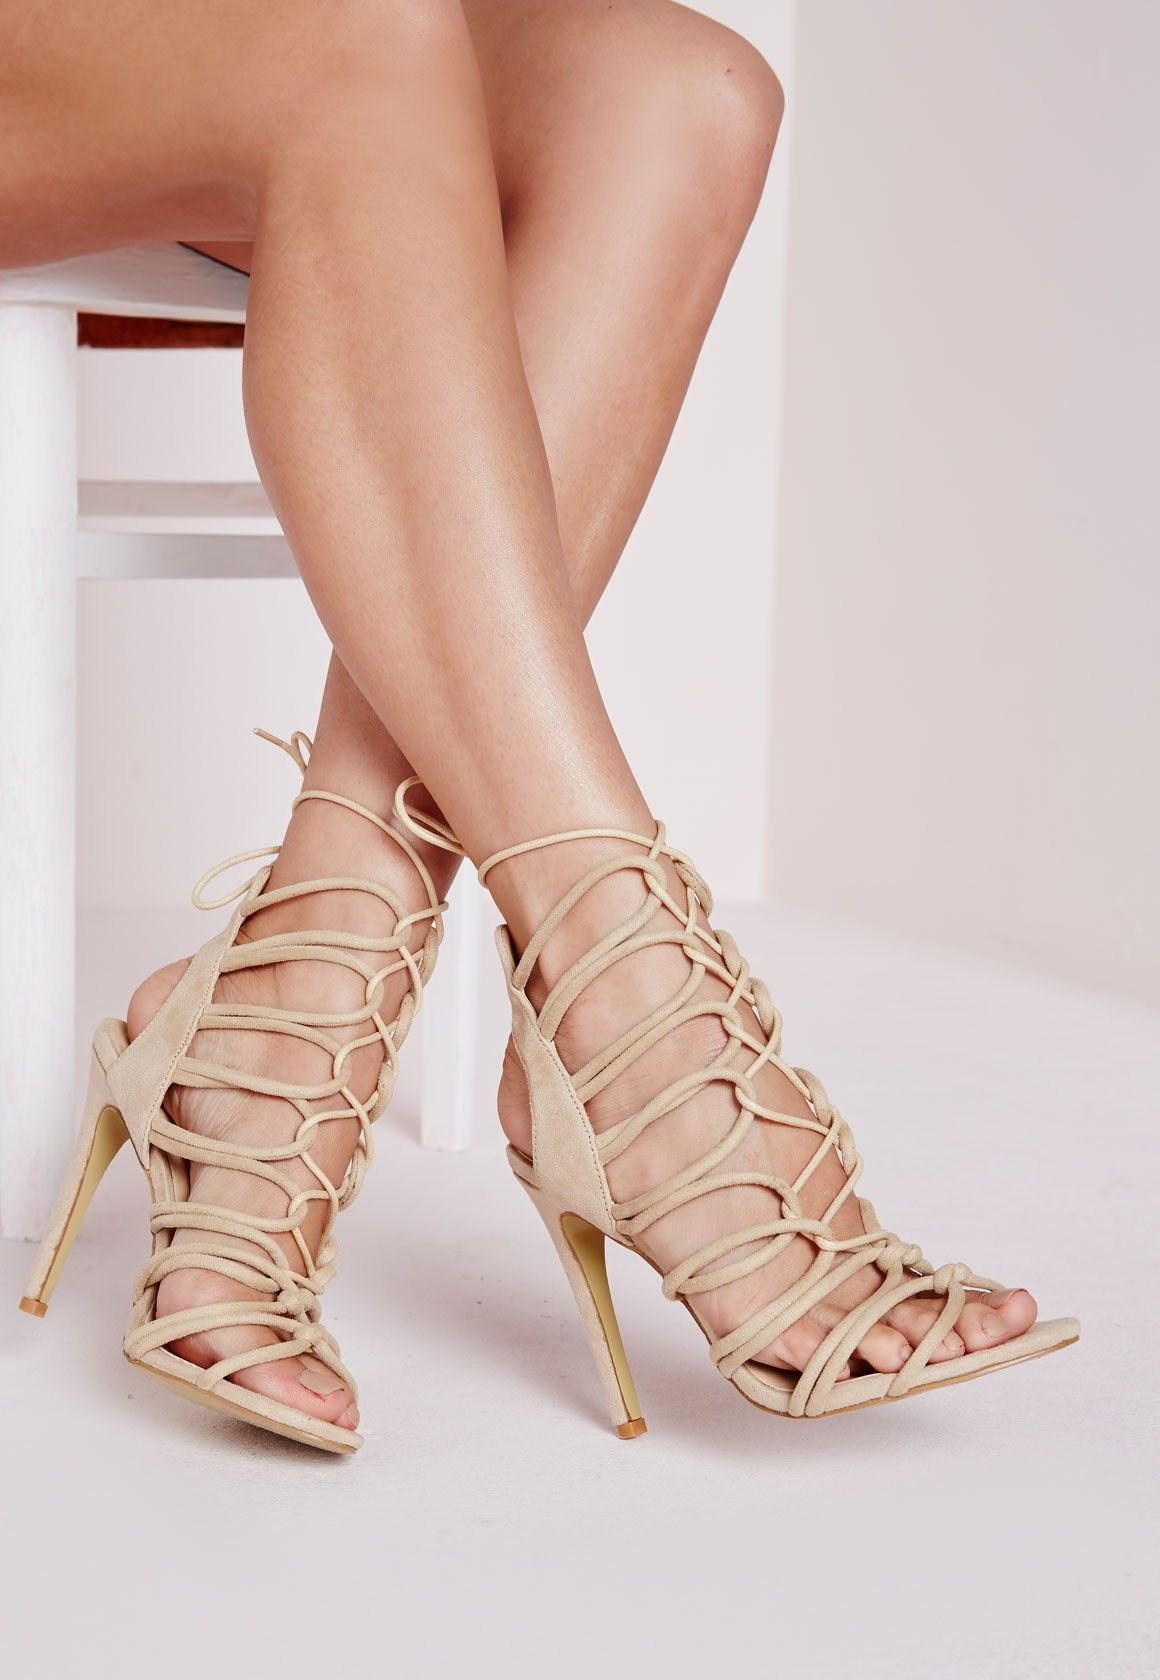 strappy nude colored sandals jpg 1152x768